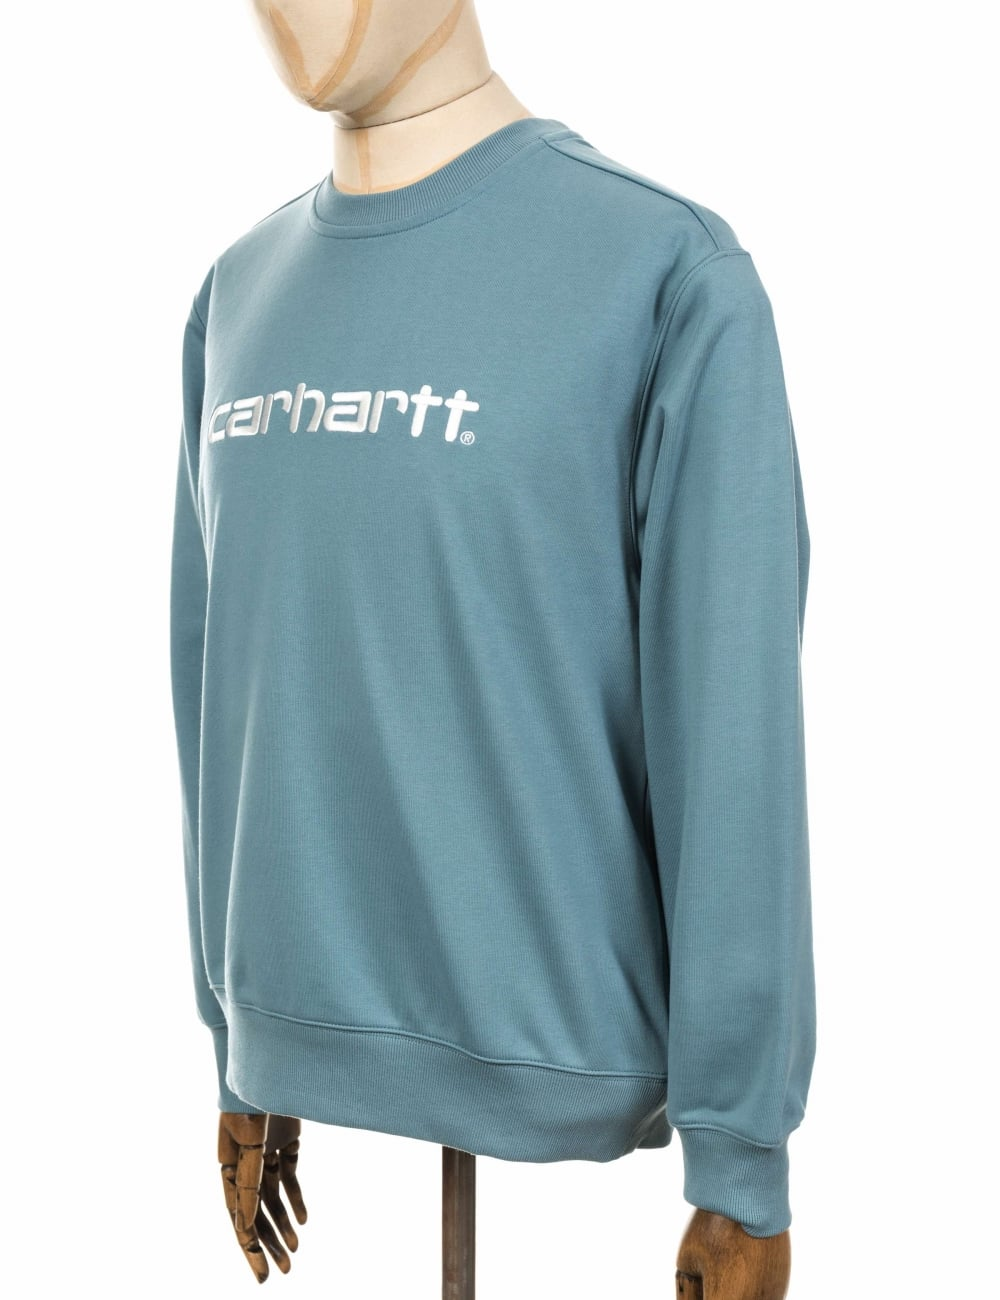 fa8c71389a Carhartt WIP Carhartt Sweatshirt - Dusty Blue Wax - Clothing from ...